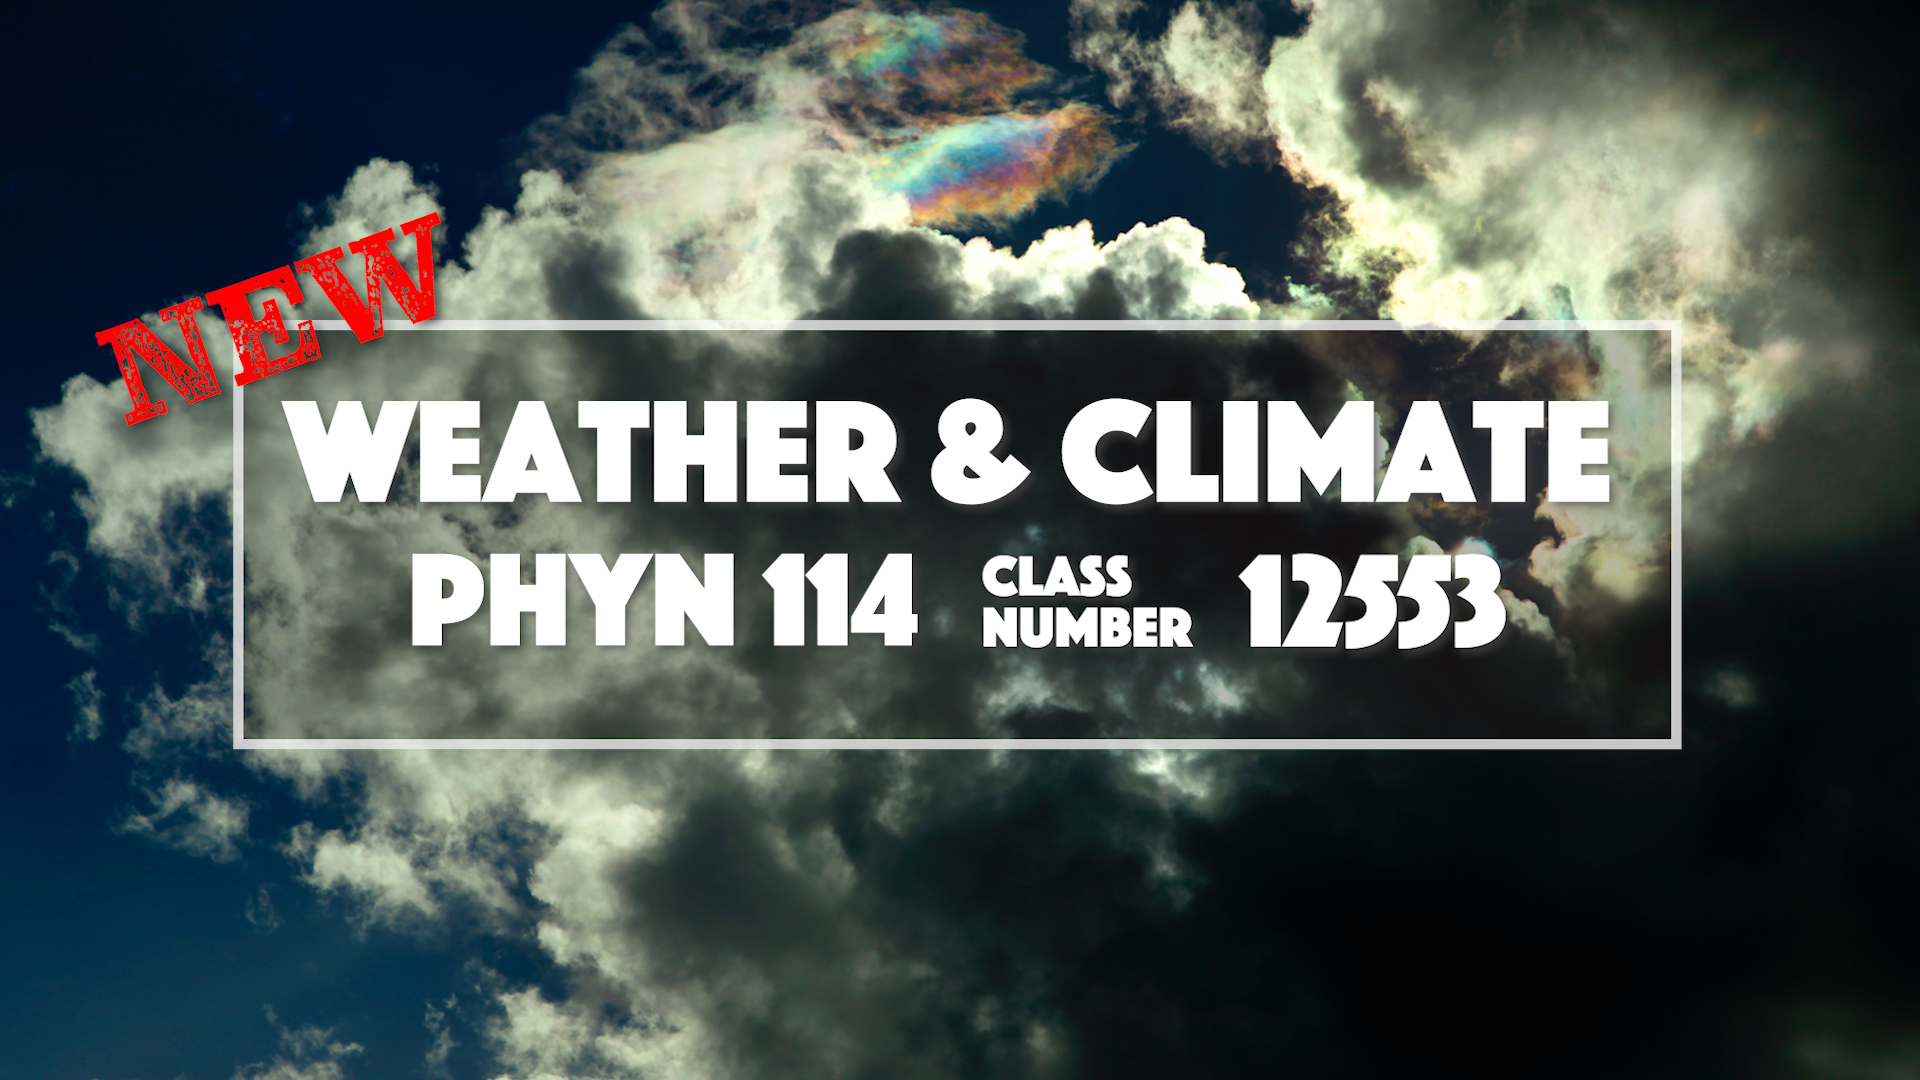 New Weather and Climate class at Miramar College Featured Image